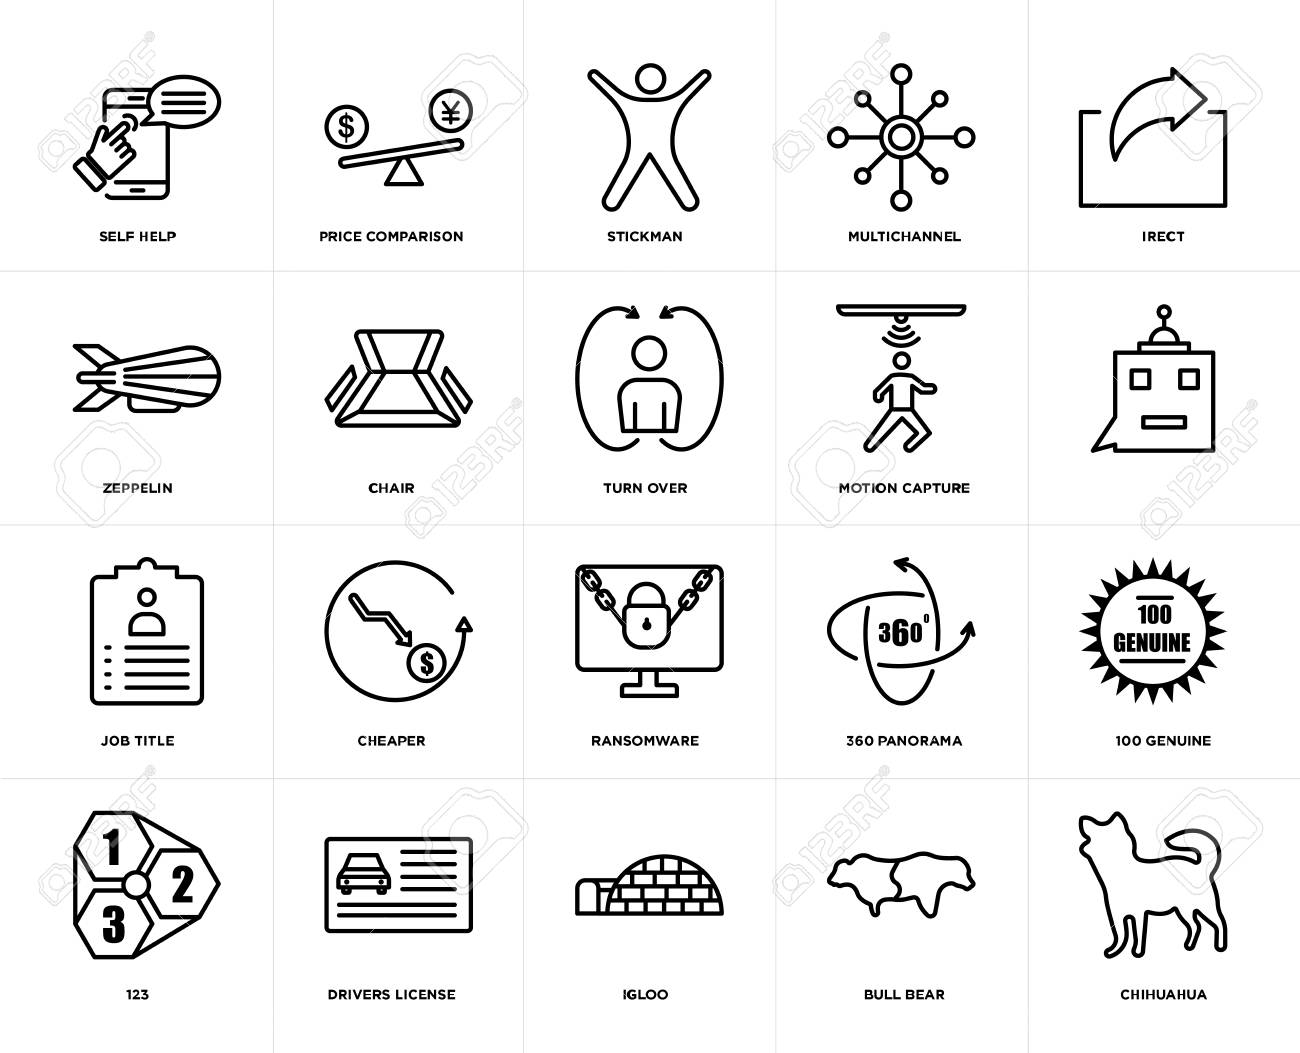 Set Of 20 icons such as chihuahua, bull bear, igloo, drivers license, 123, irect, motion capture, ransomware, job title, chair, stickman, web UI editable icon pack, pixel perfect - 111892234